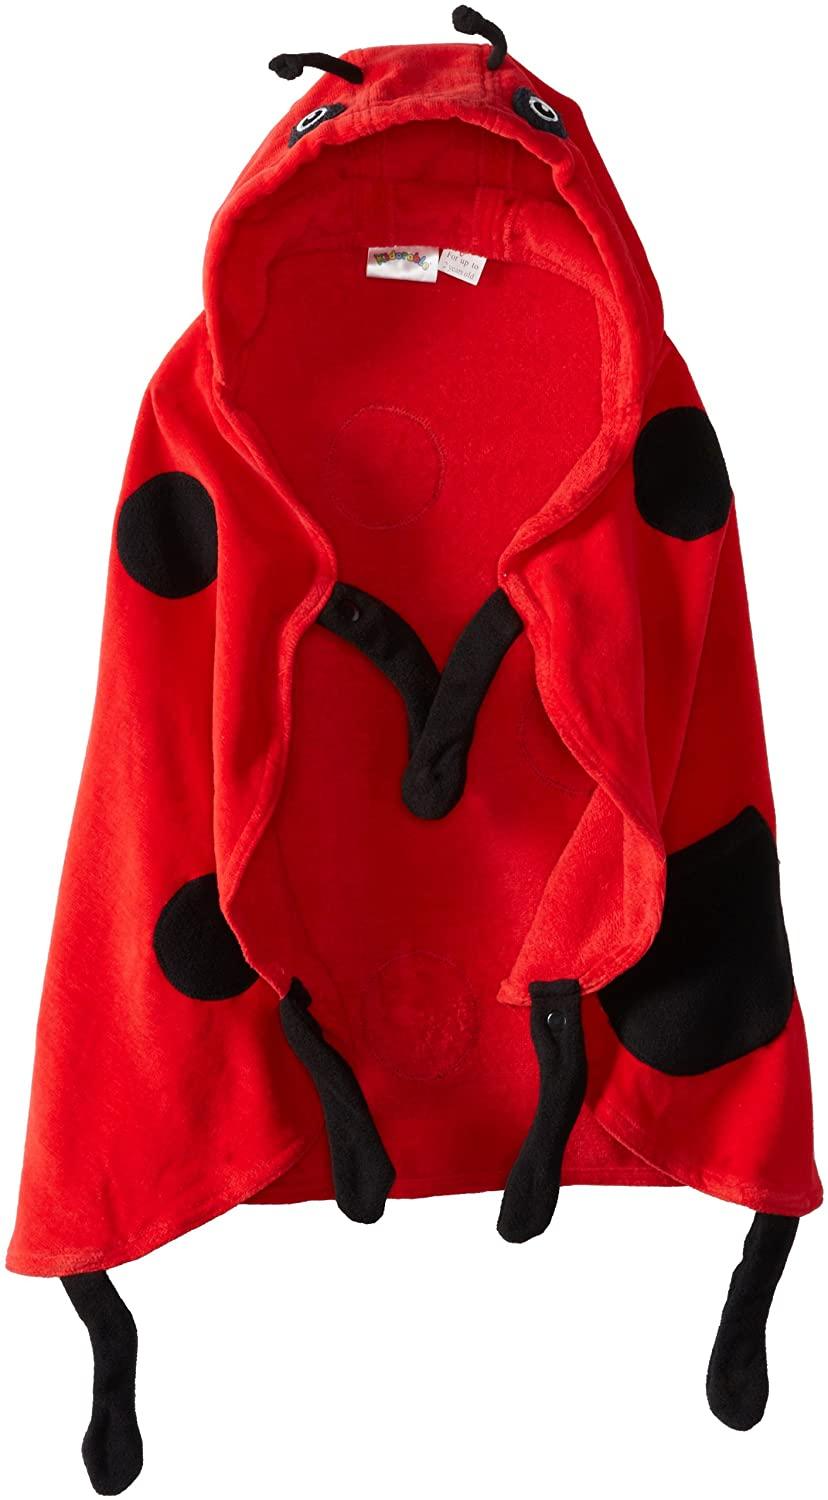 KIDORABLE Ladybug Infant Towel, Red, 0-3 Years Kidorable Girls 2-6x 2600042